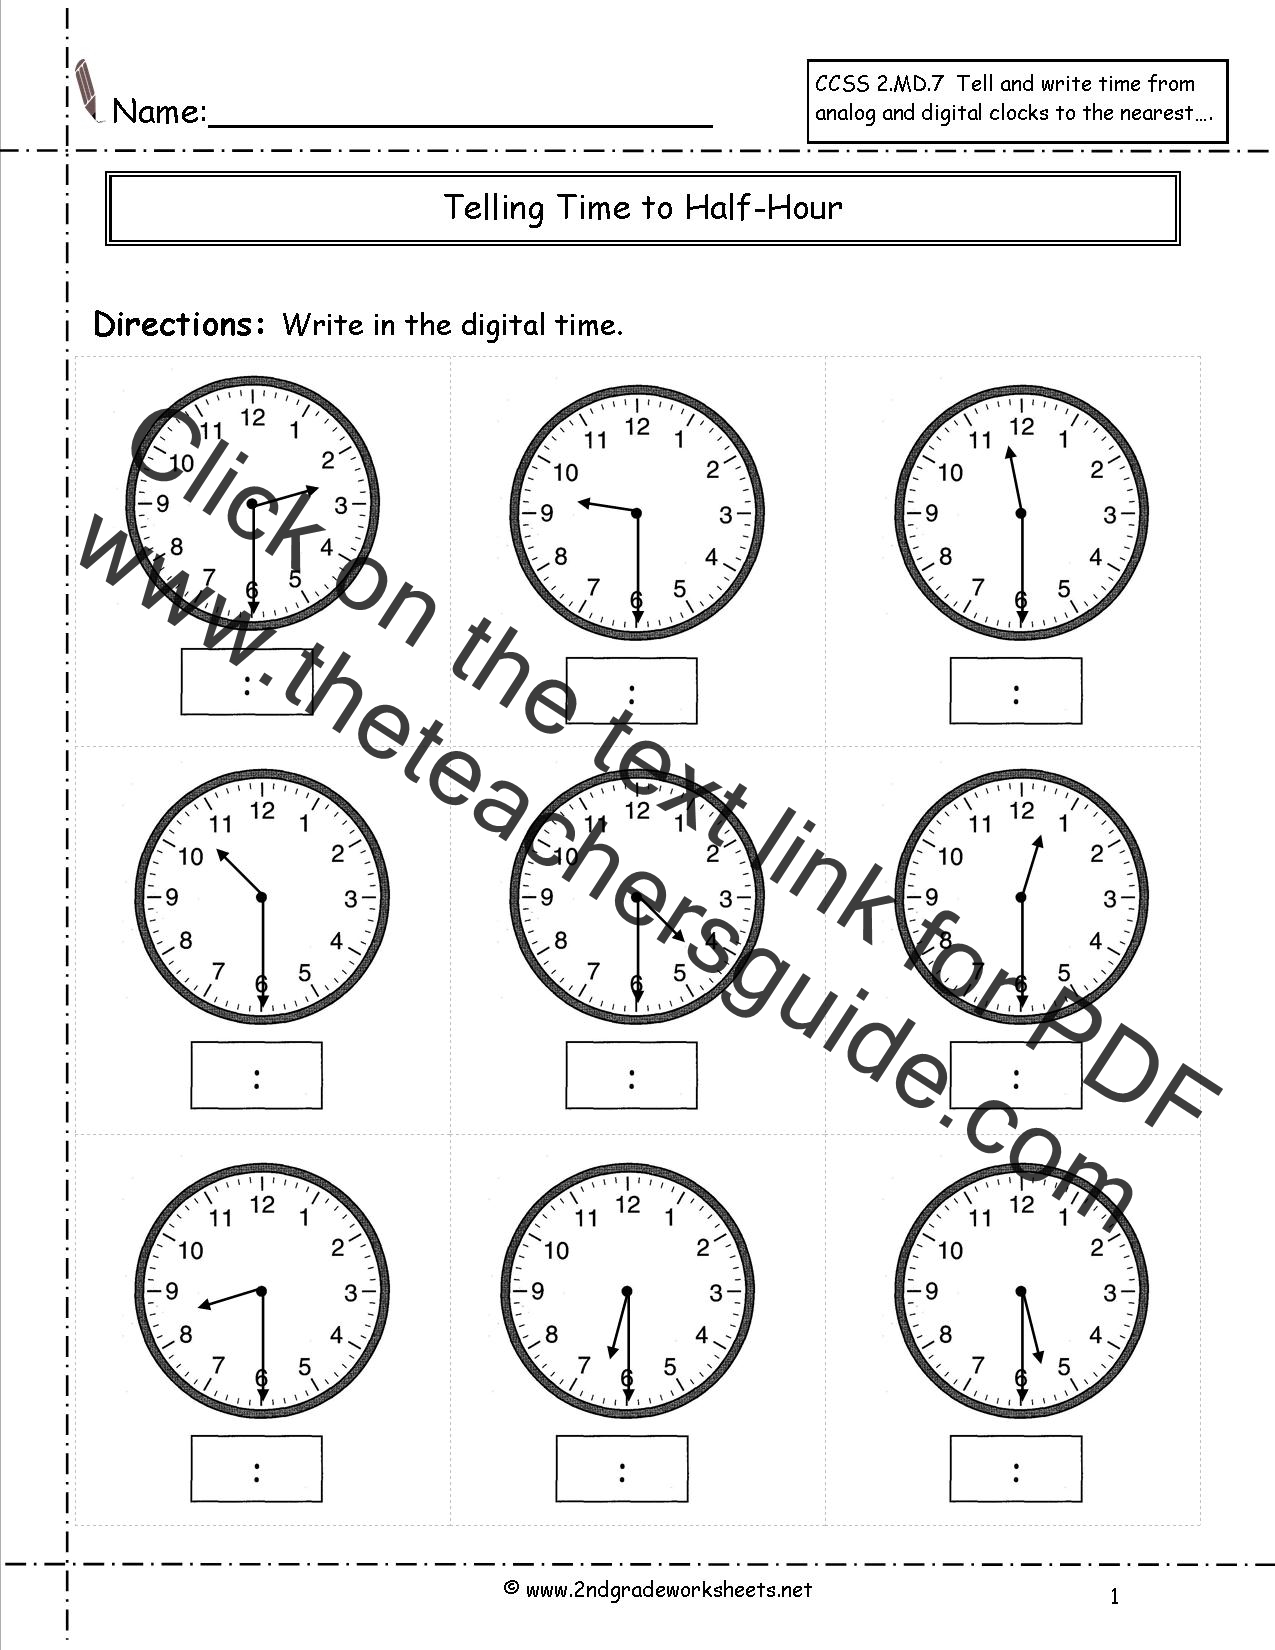 Worksheet Telling Time 2nd Grade telling and writing time worksheets to nearest half hour worksheet